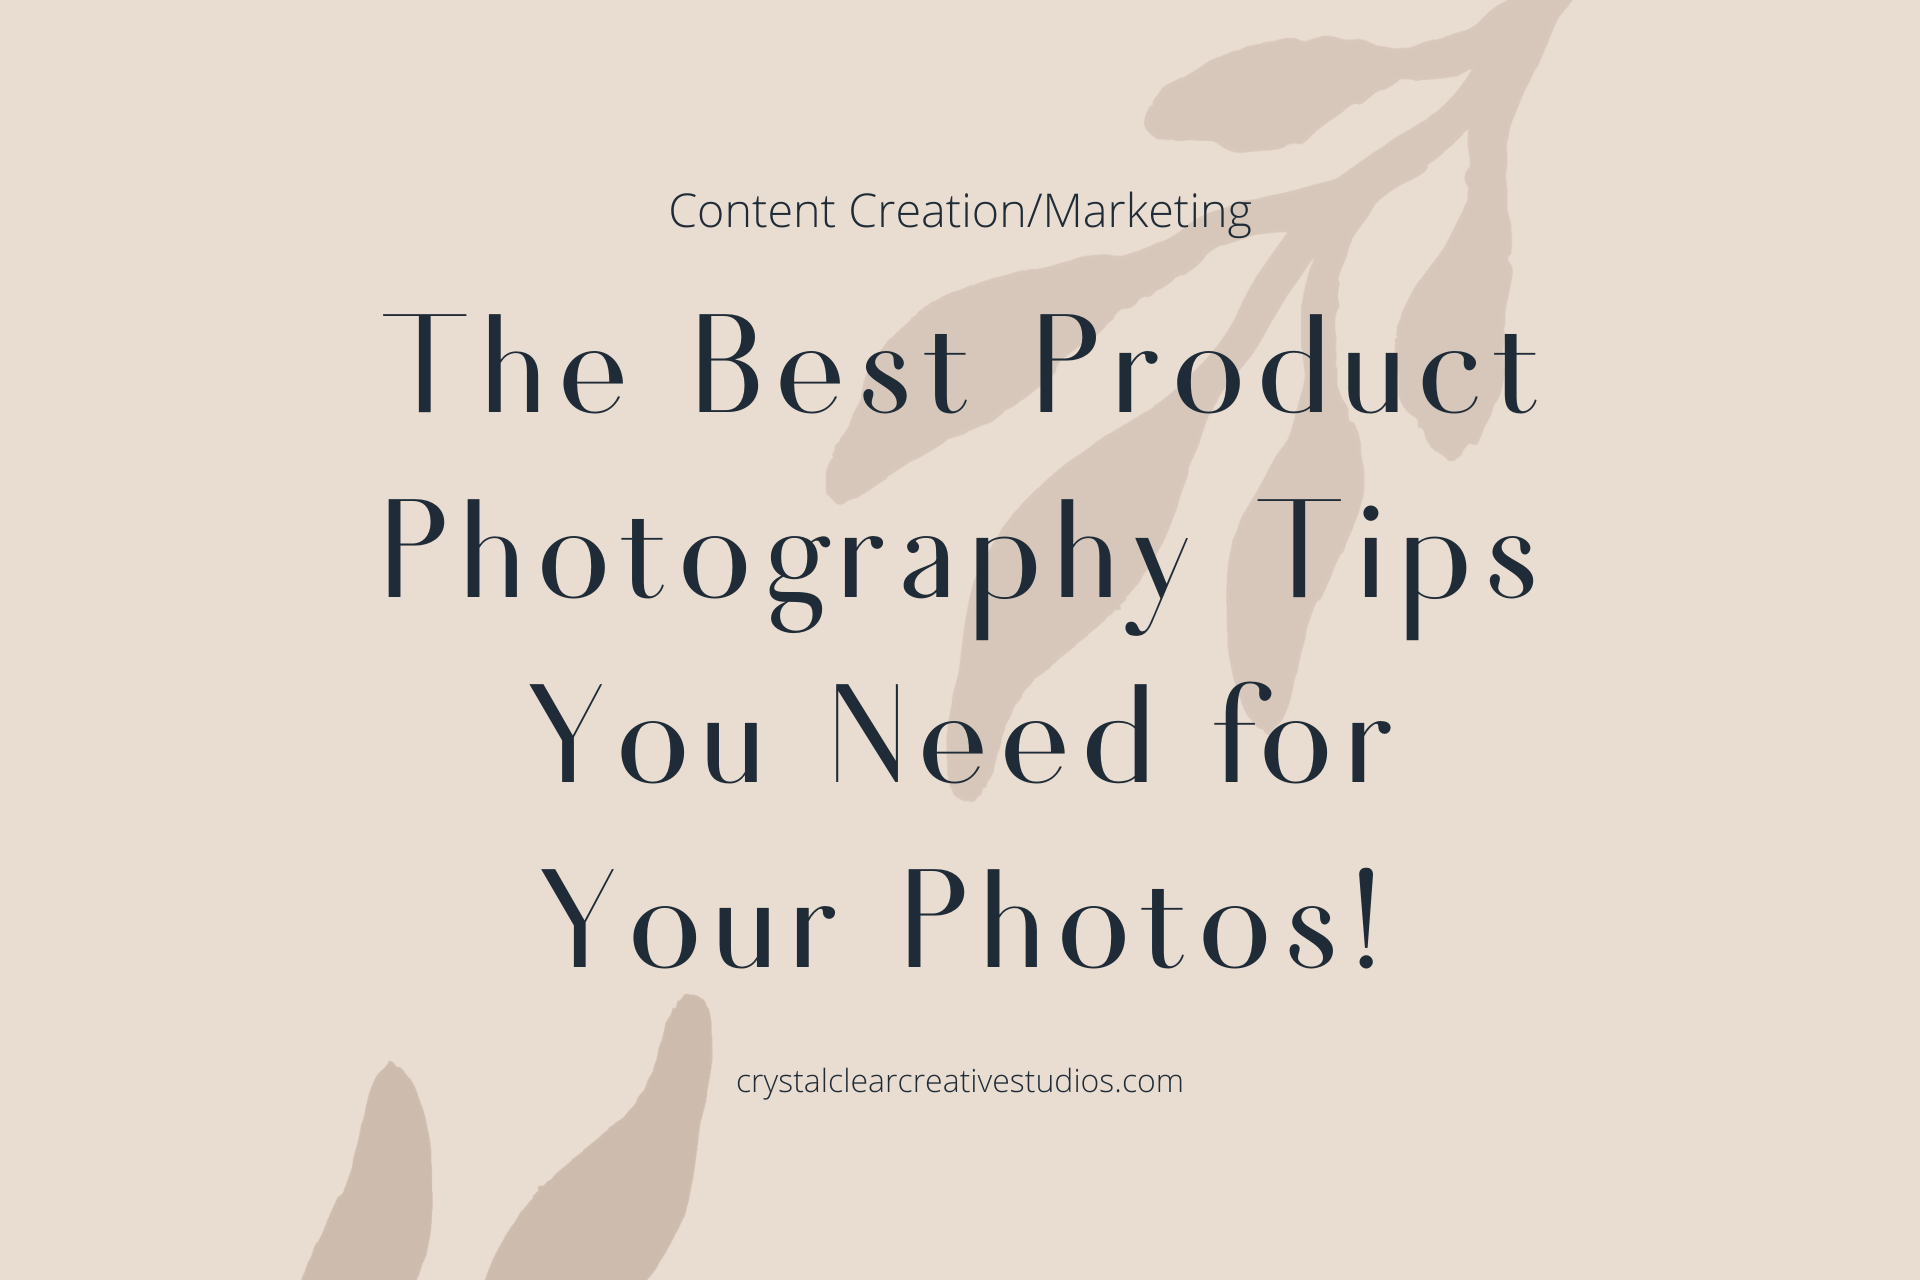 The Best Product Photography Tips You Need for Your Photos!